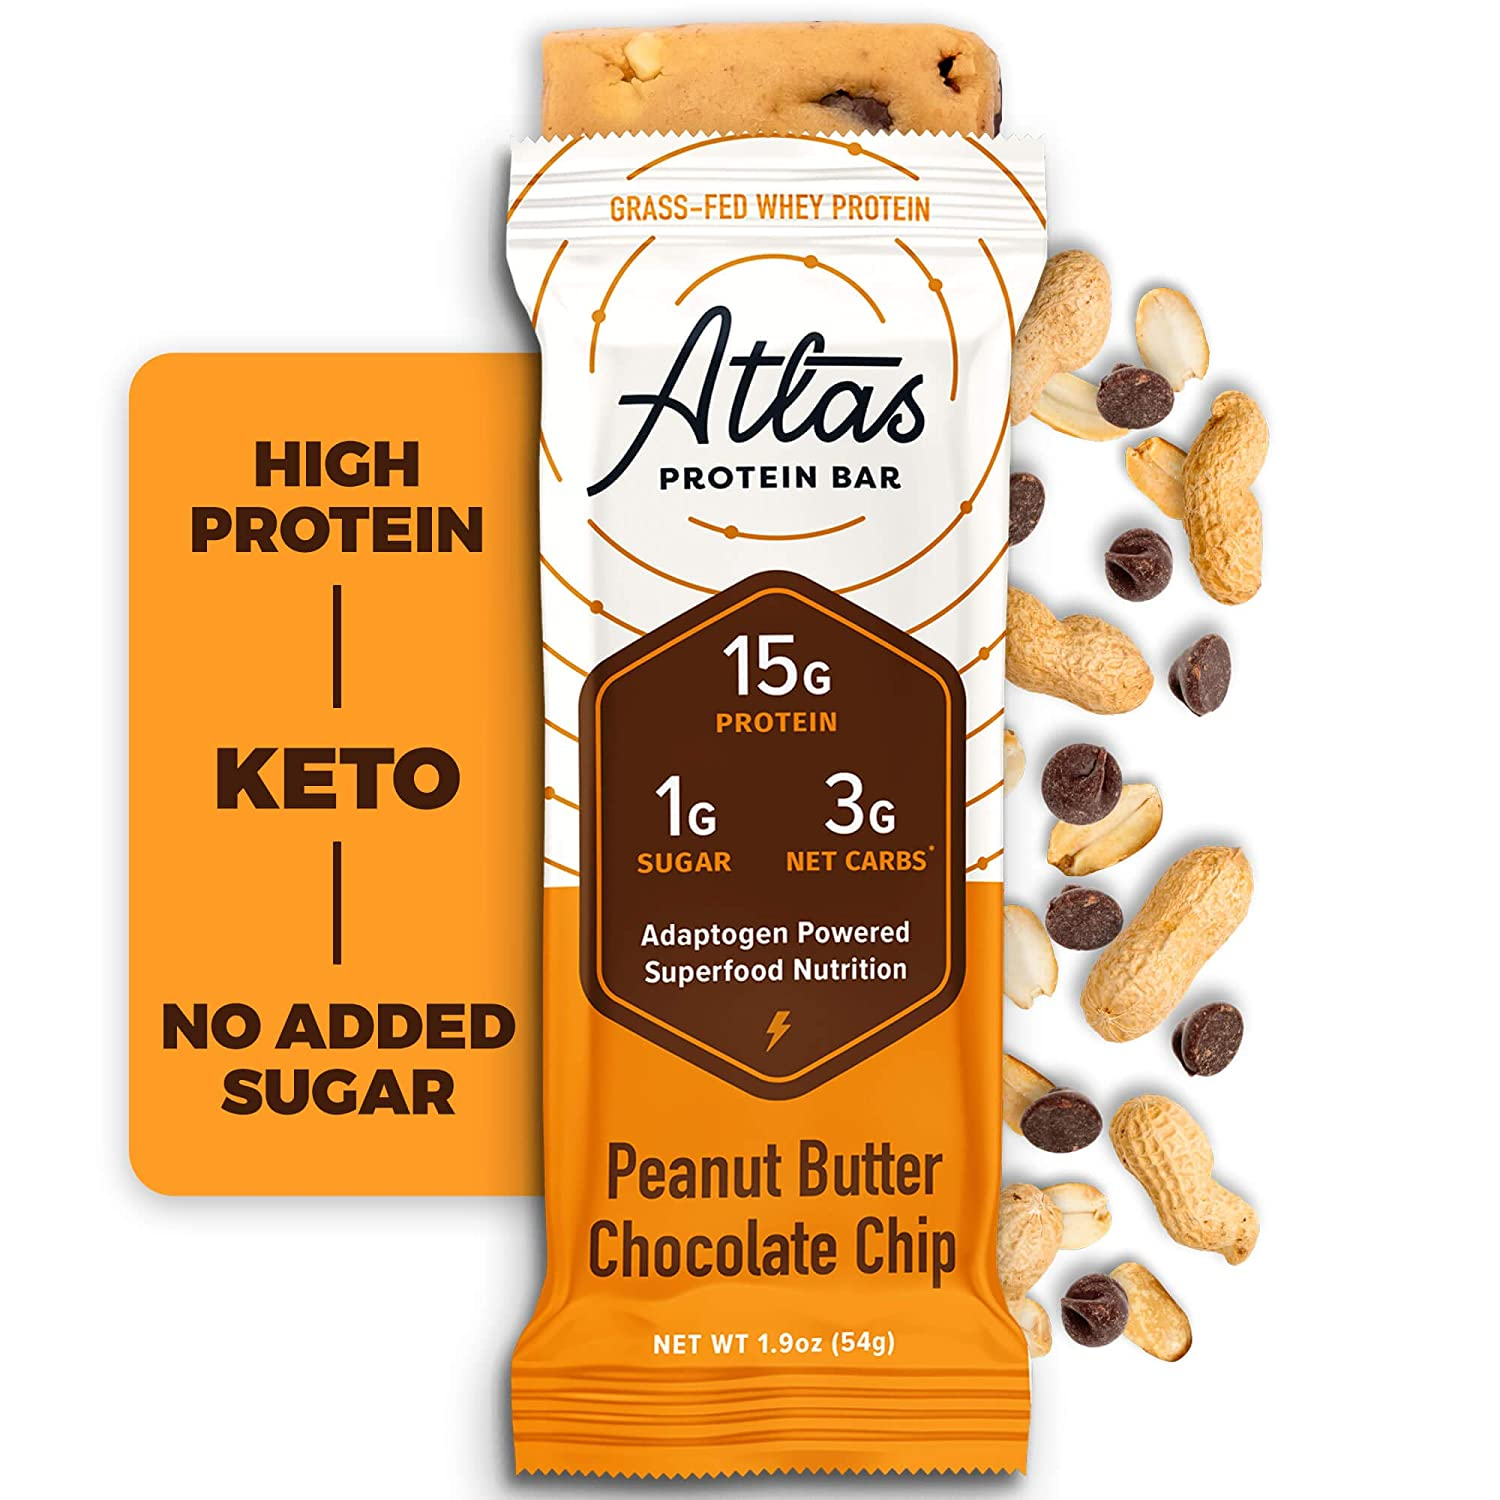 Atlas Protein Bar, Meal Replacement, Keto-Friendly Snack, Grass-Fed Whey, Organic Ashwagandha, Low Sugar, Low Carb, Gluten Free, 10 pack, Peanut Butter Chocolate Chip